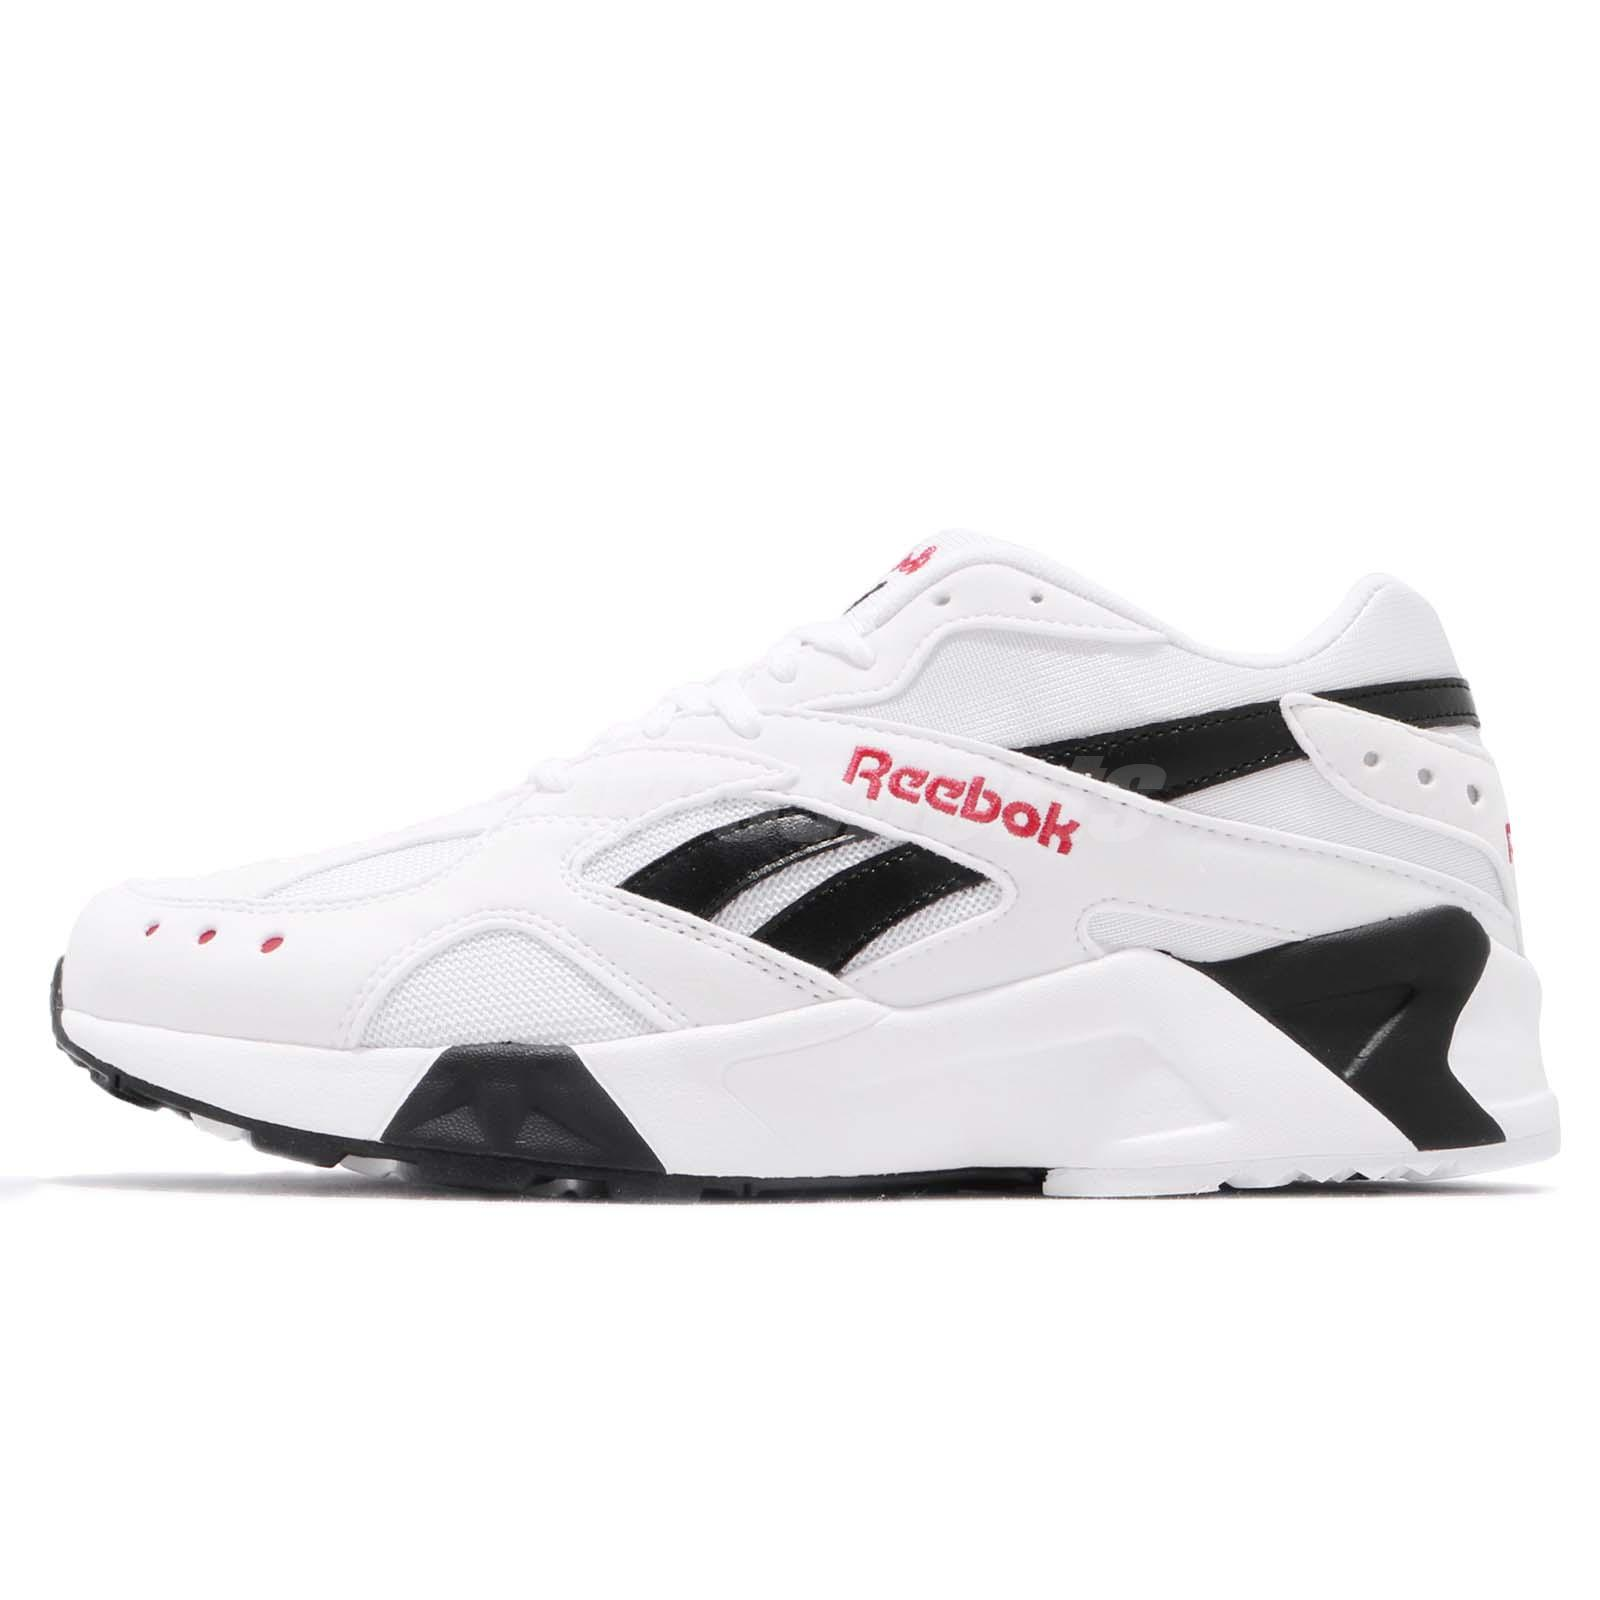 7726f9b63a7e ... coupon code reebok aztrek white black excellent red men running daddy  shoes sneakers cn7187 d18cc 5d3af